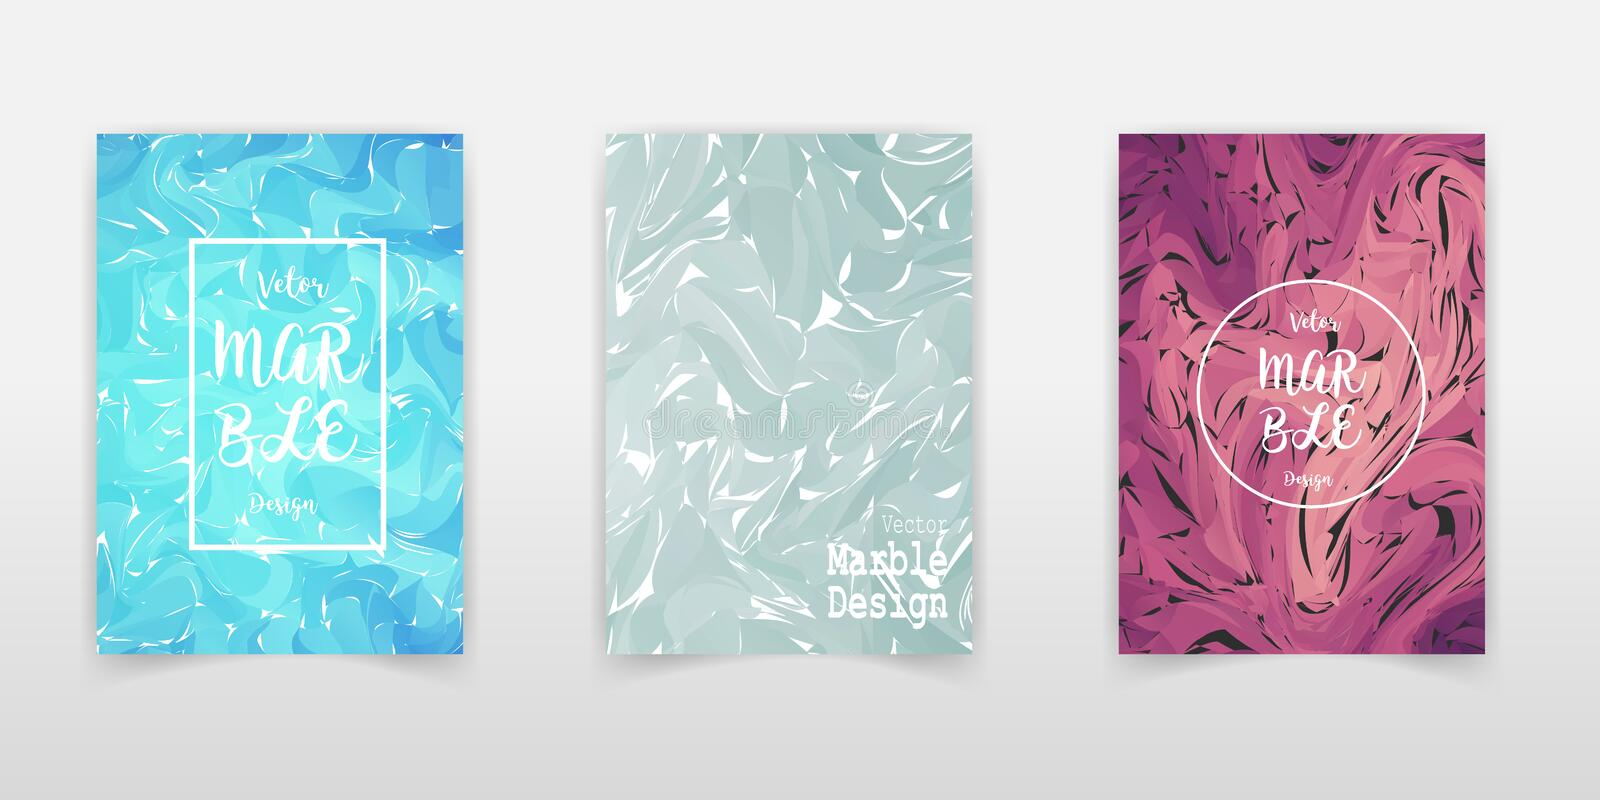 Mixture of acrylic paints. Liquid marble texture. Fluid art. Applicable for design cover, presentation, invitation, flyer, annual stock illustration